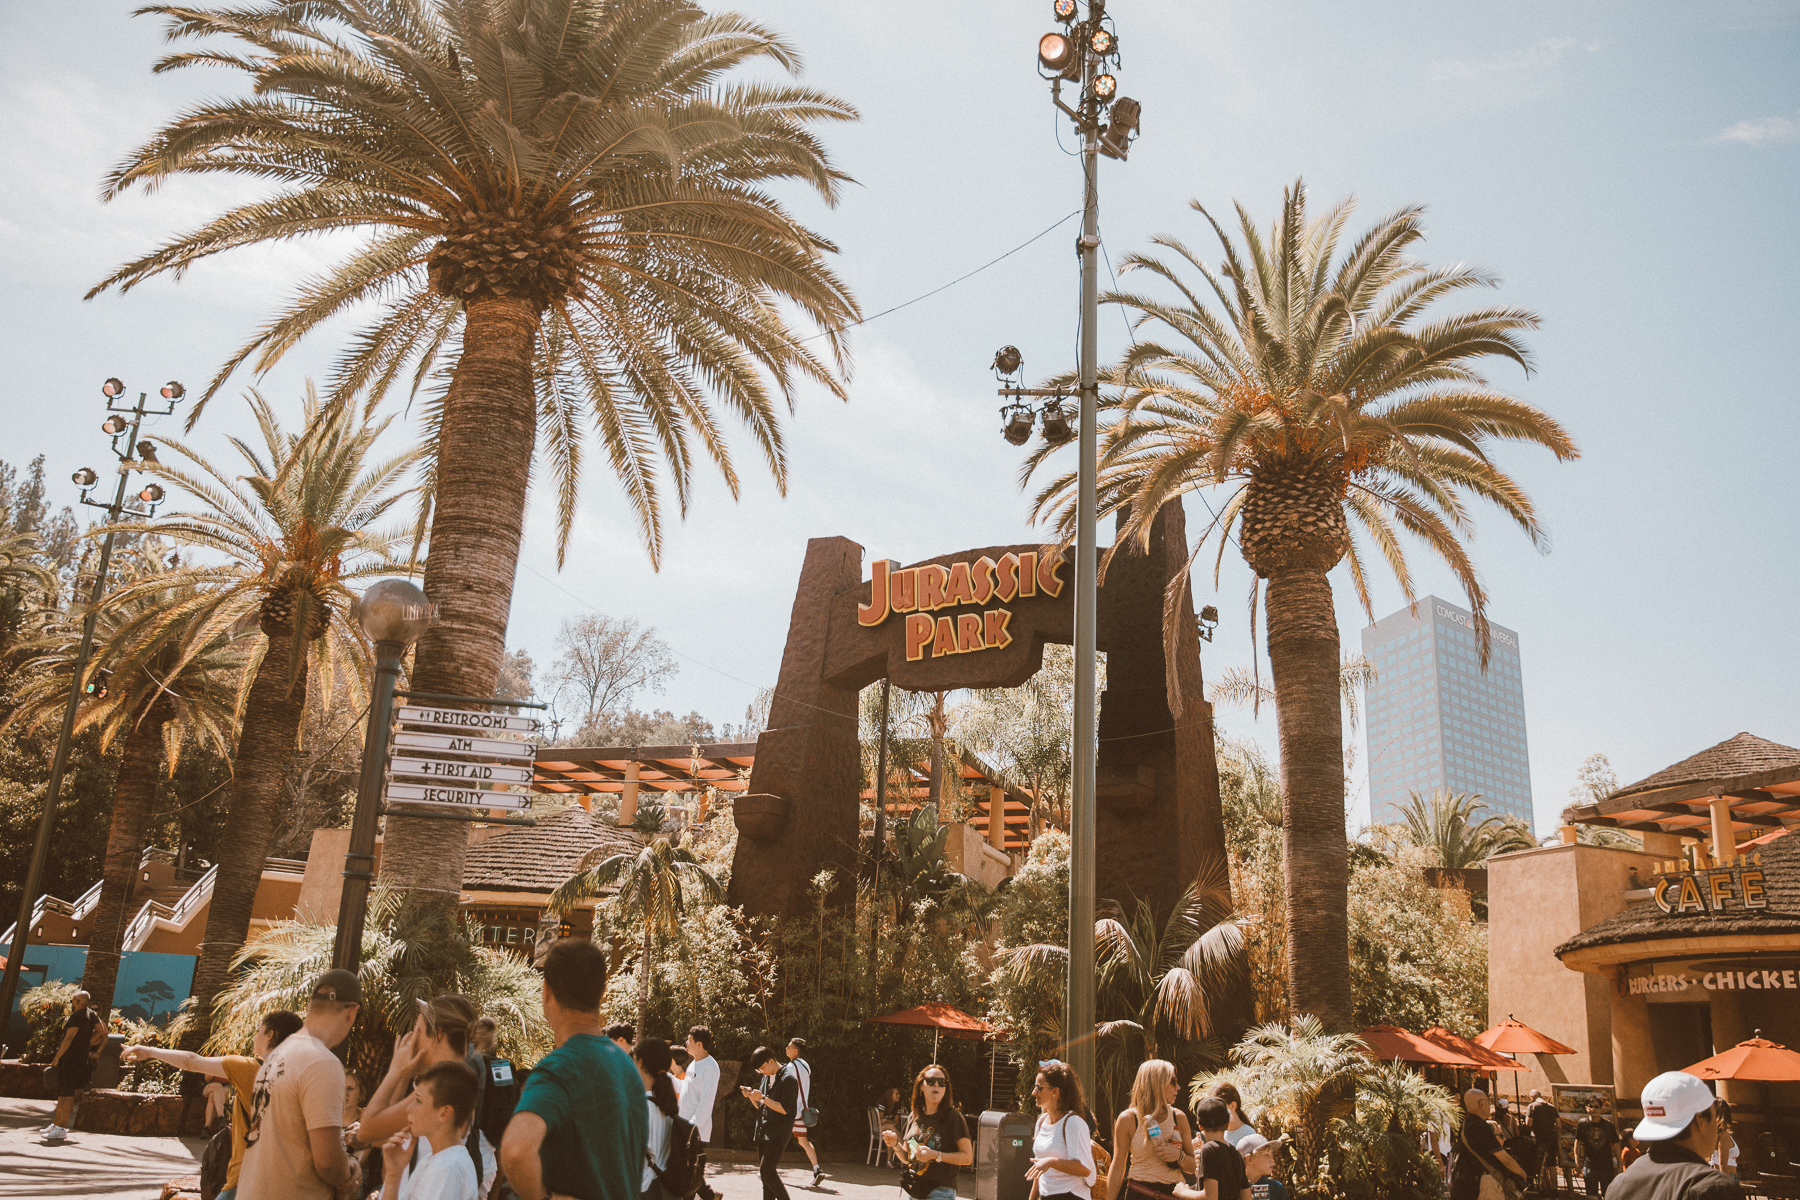 California Universal Studios by photographer Ailera Stone